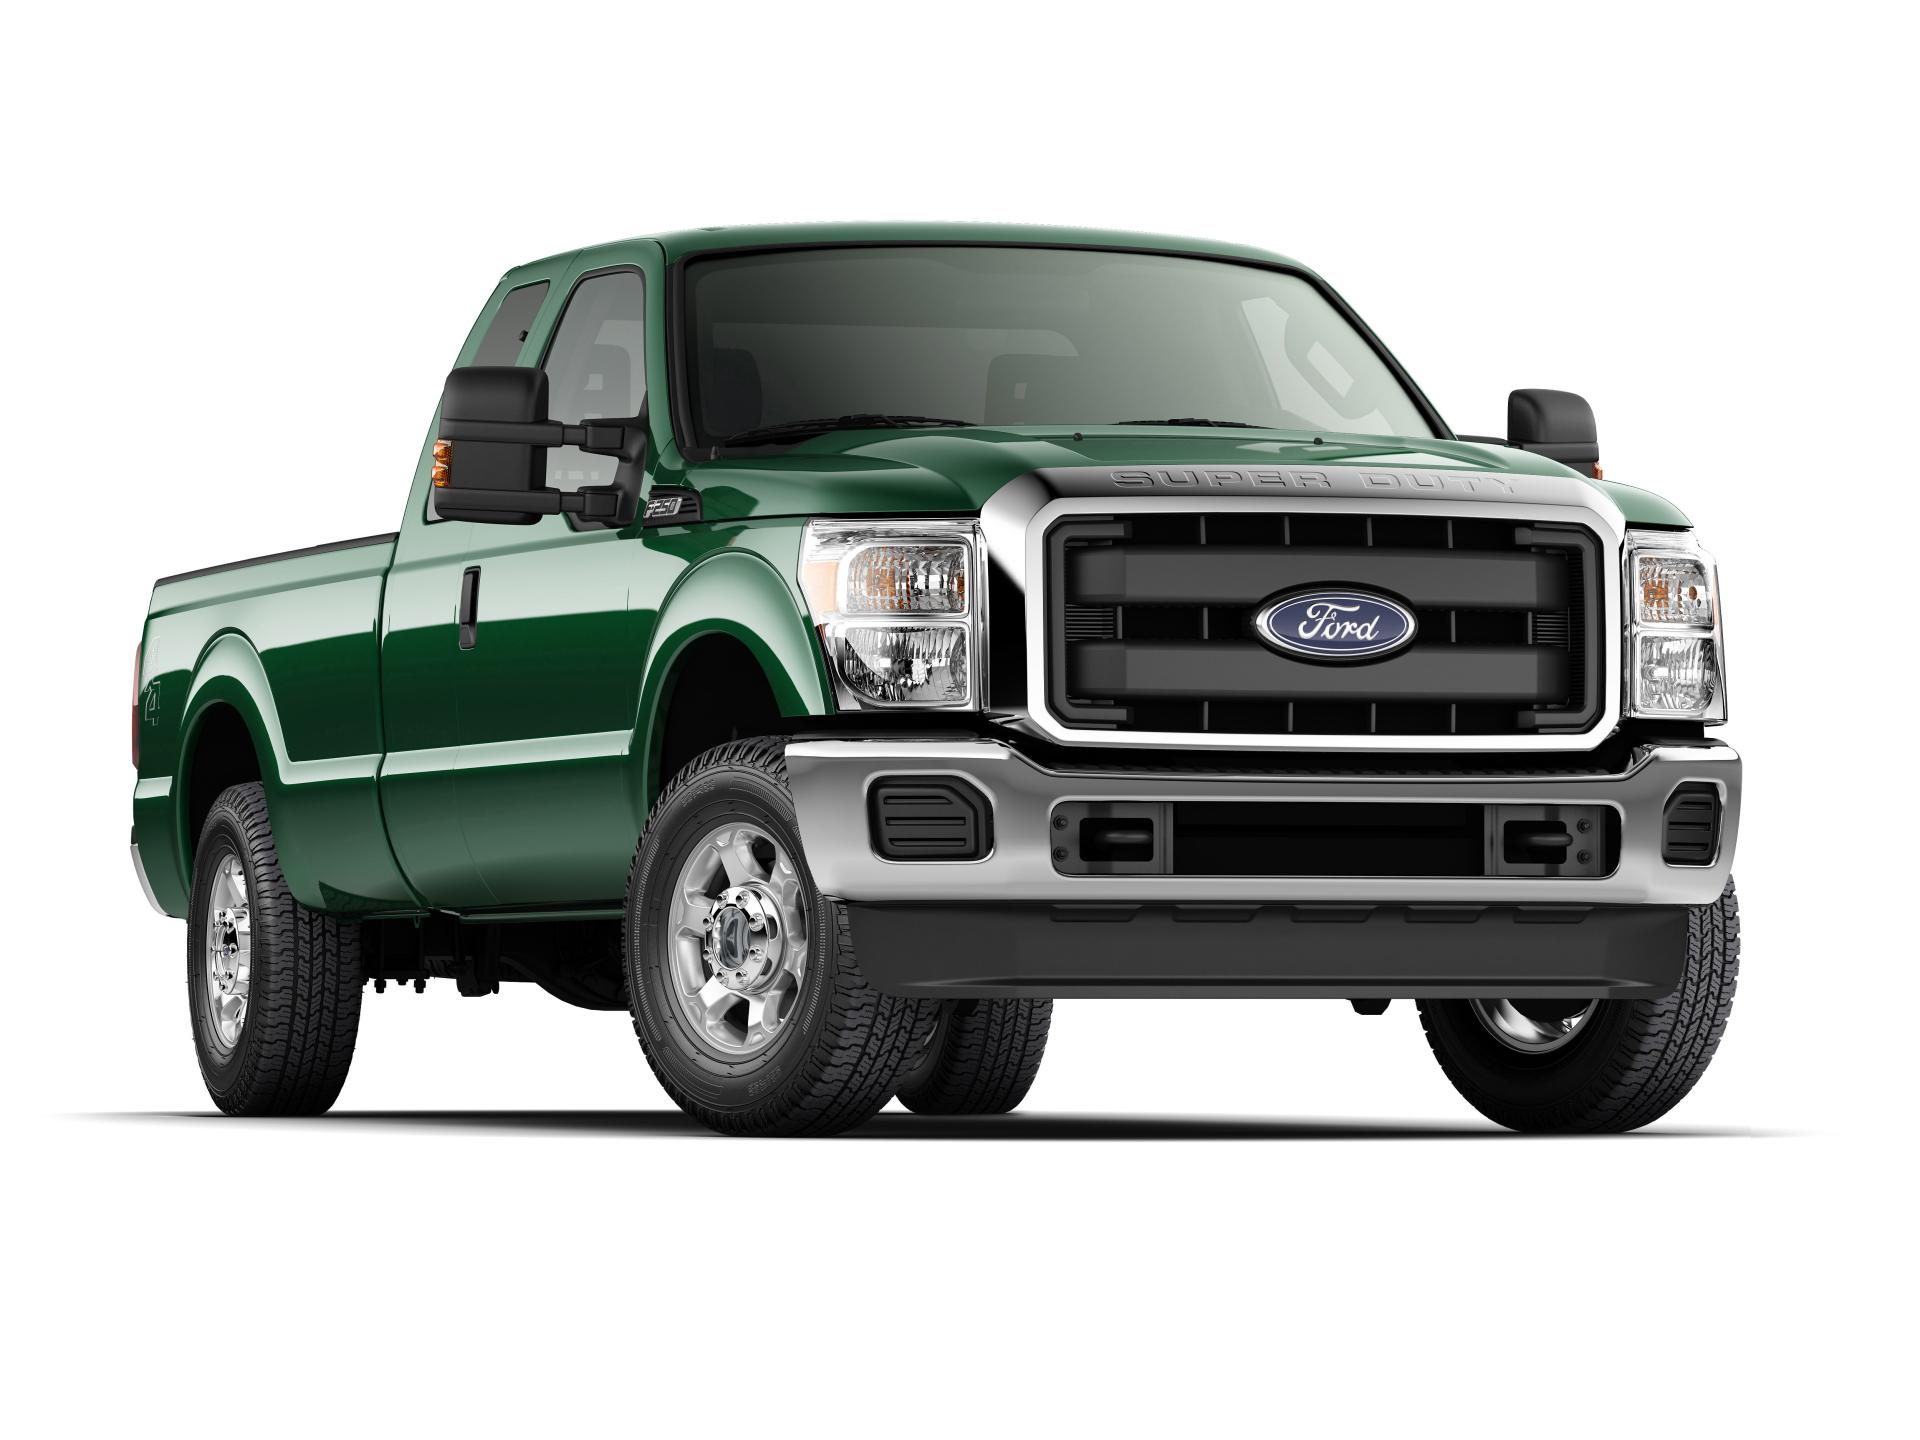 2014 ford f series super duty news and information. Black Bedroom Furniture Sets. Home Design Ideas